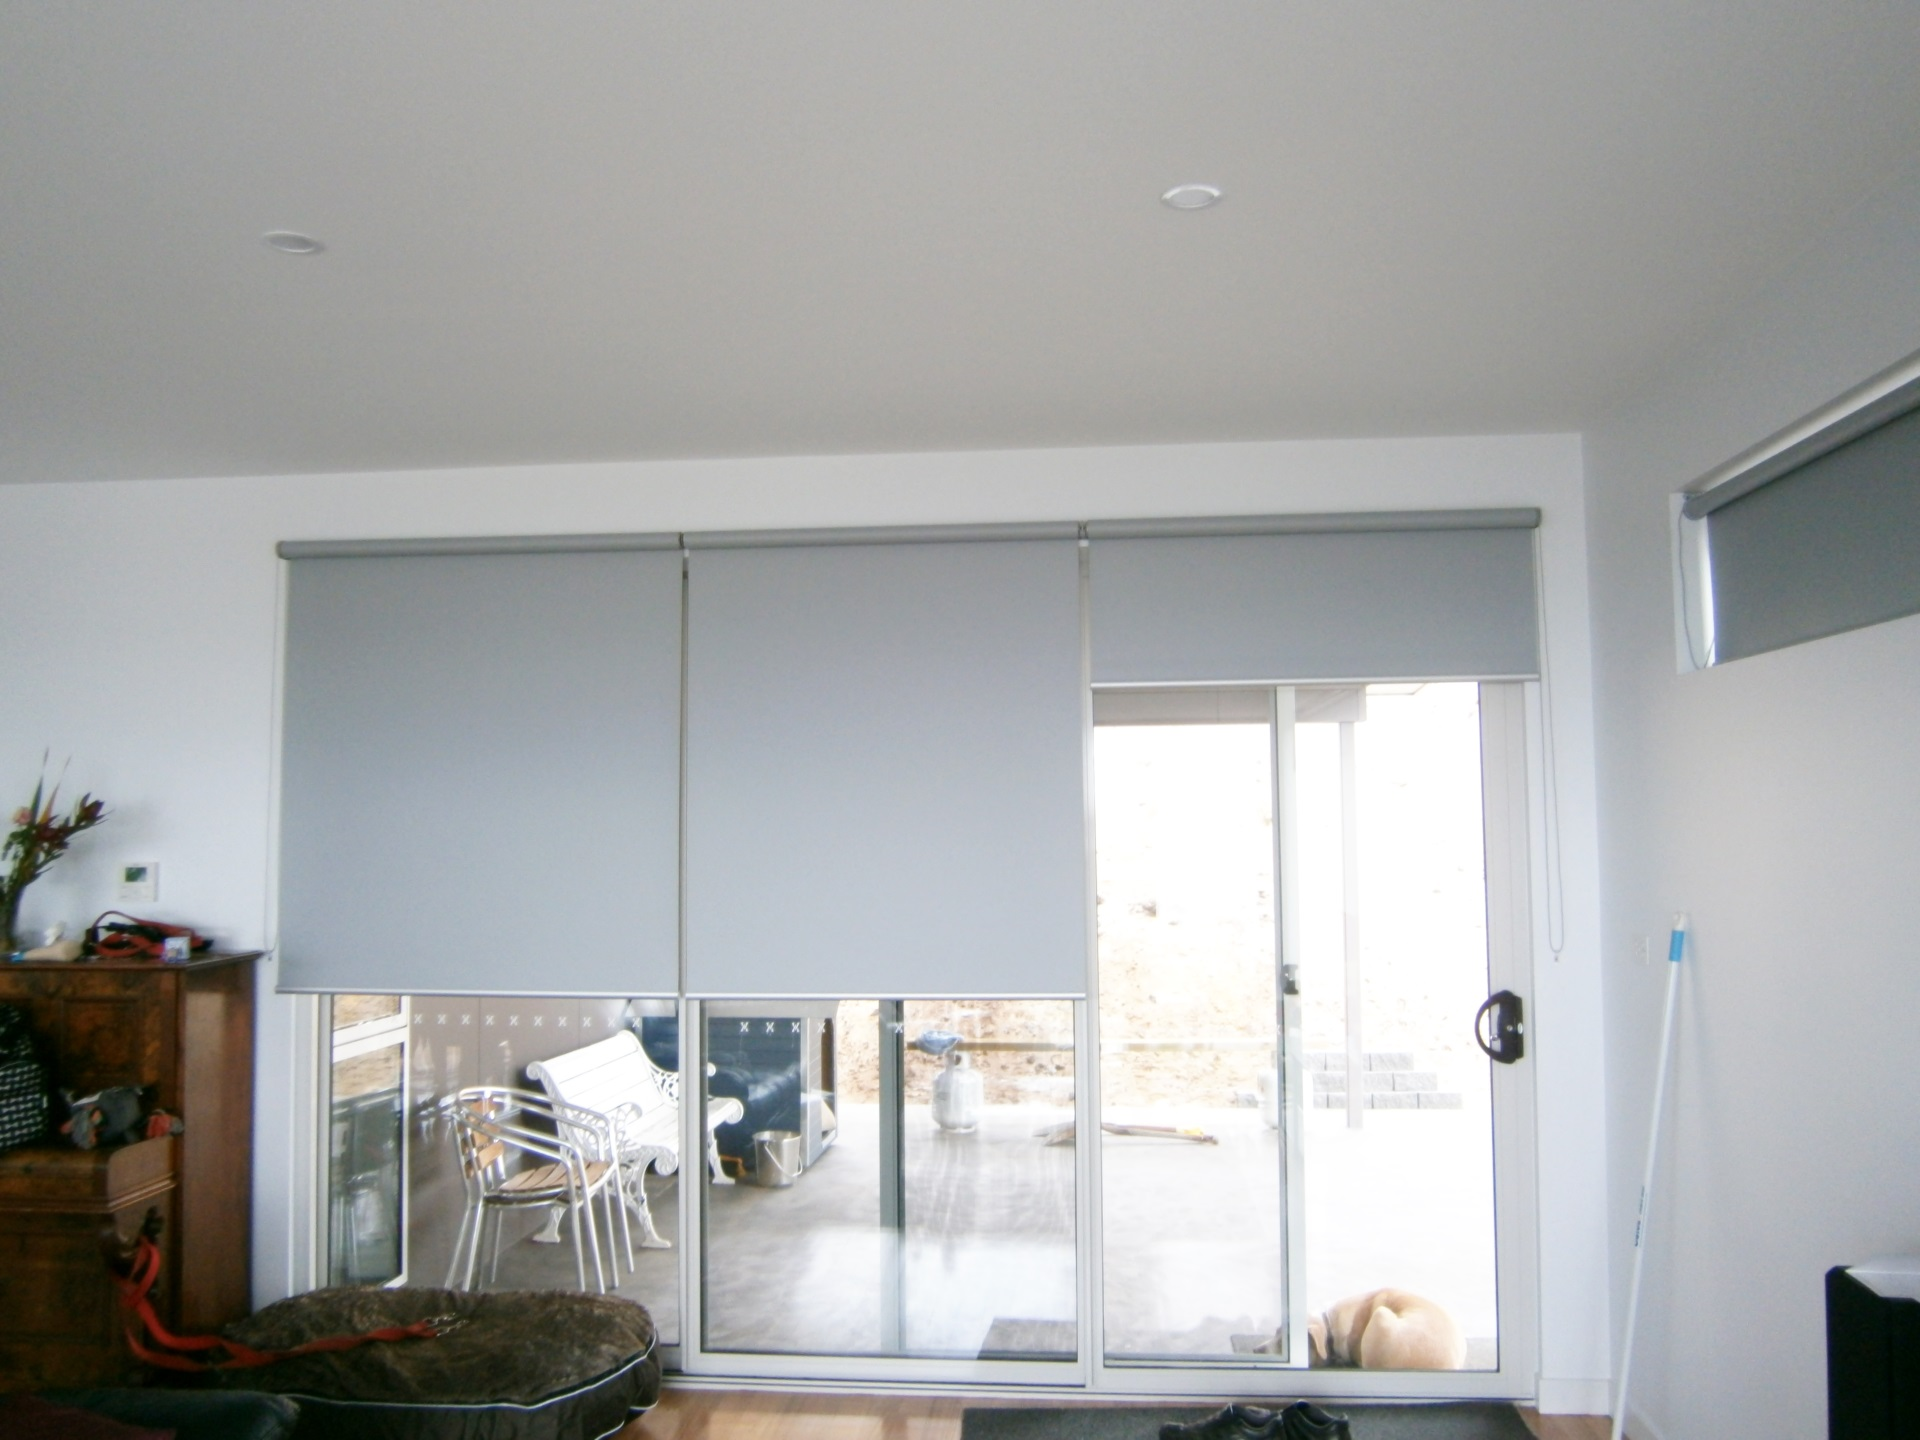 Roller Blinds at window